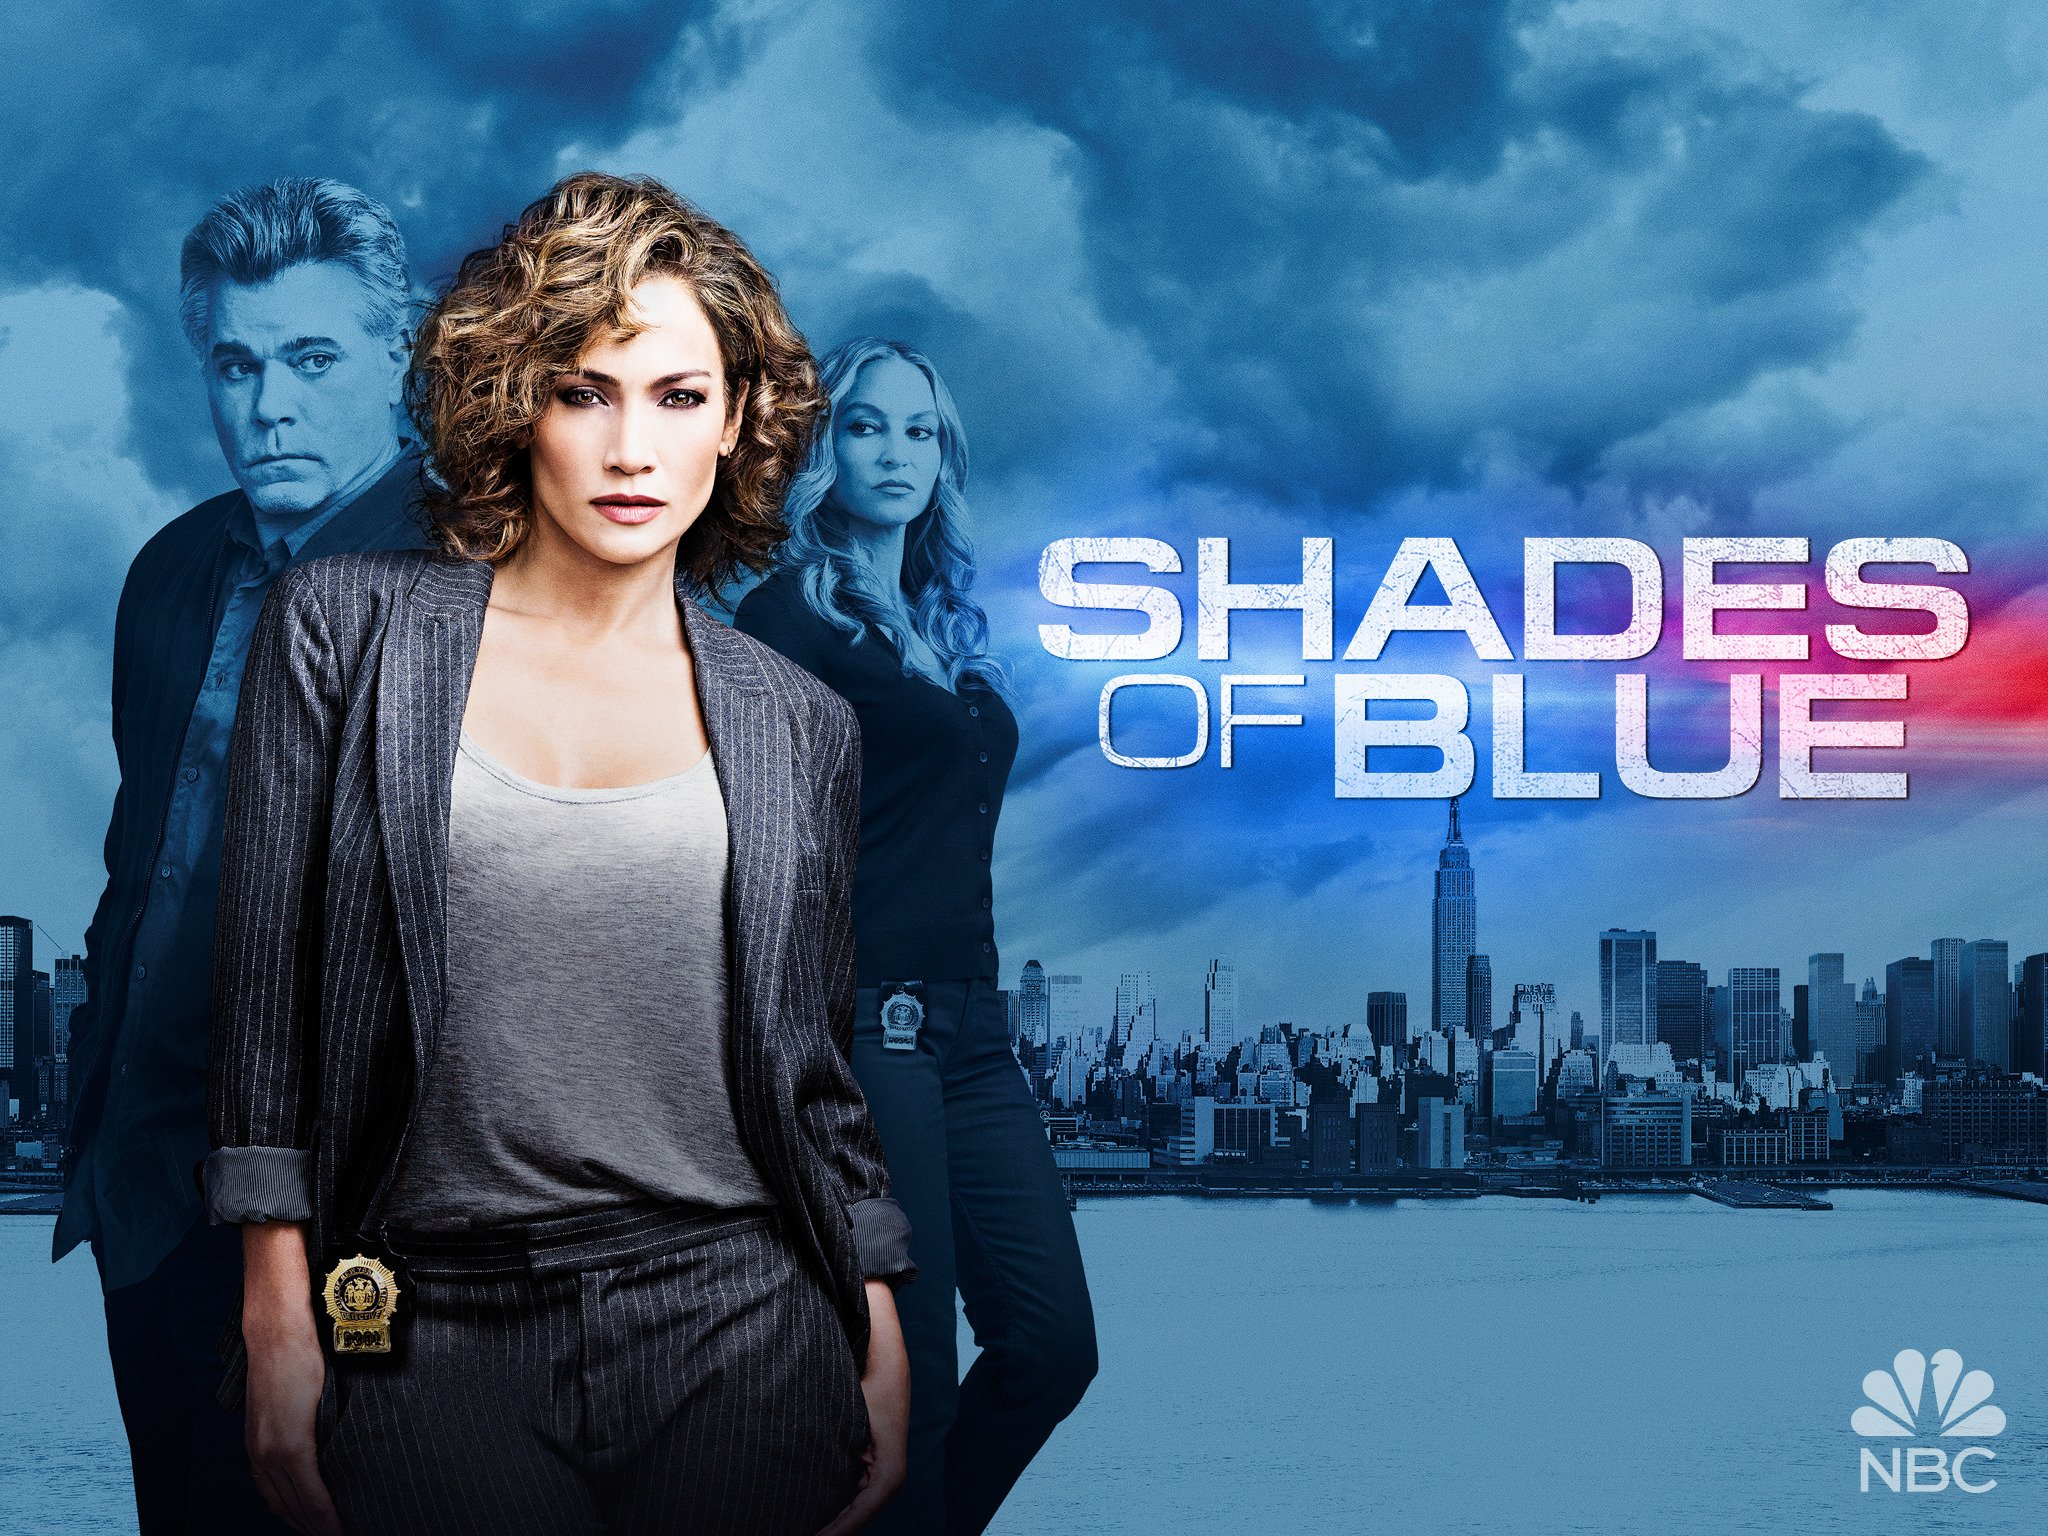 Amazon.com: Shades of Blue, Season 1: Jennifer Lopez, Ray Liotta ...